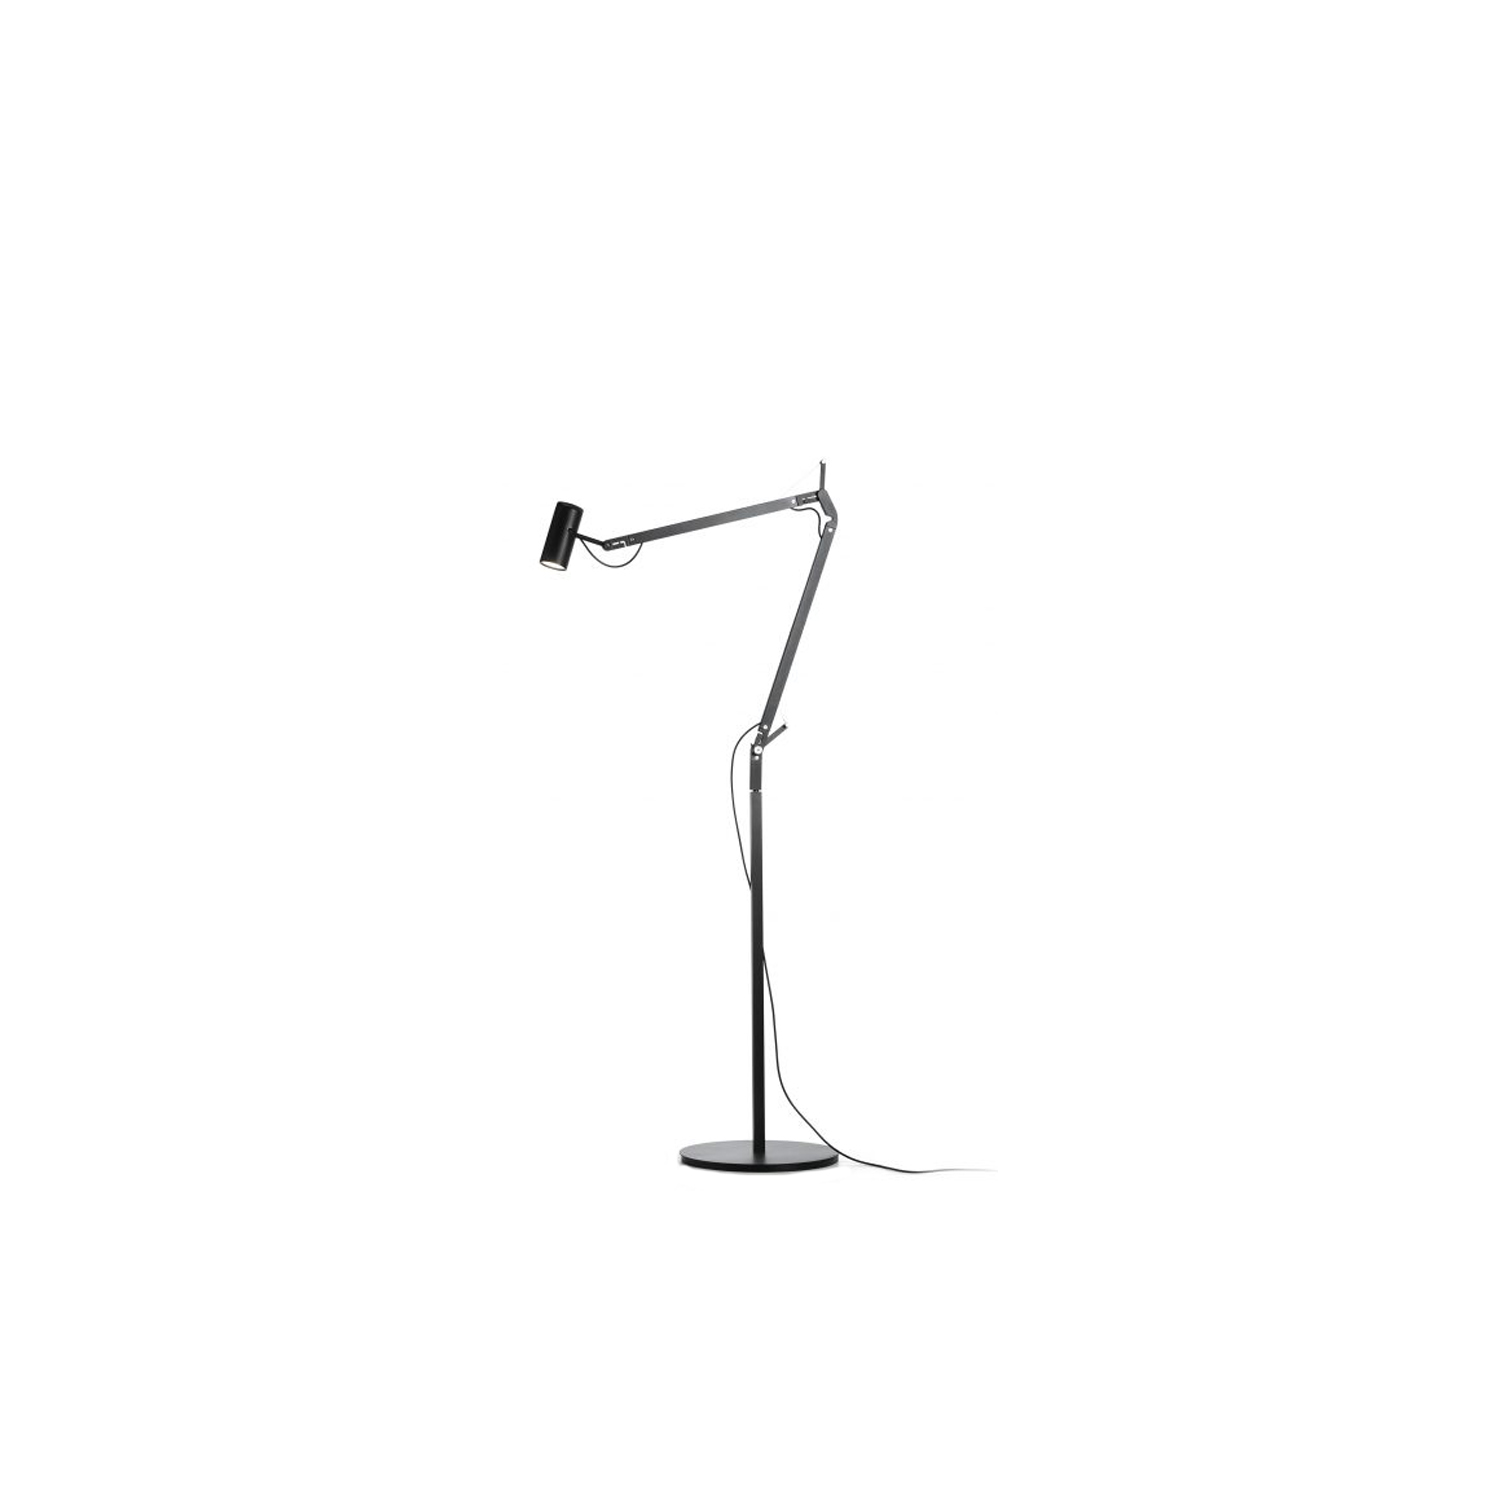 Polo Floor Lamp - The fluidity of its movements and its total stability make this flexible fitting a light source which can be moved anywhere without cluttering your desk or taking up too much valuable space. Its integrated LED technology allows one to direct the beam with the utmost precision, for a light that is both focused and warm, yet highly useful.